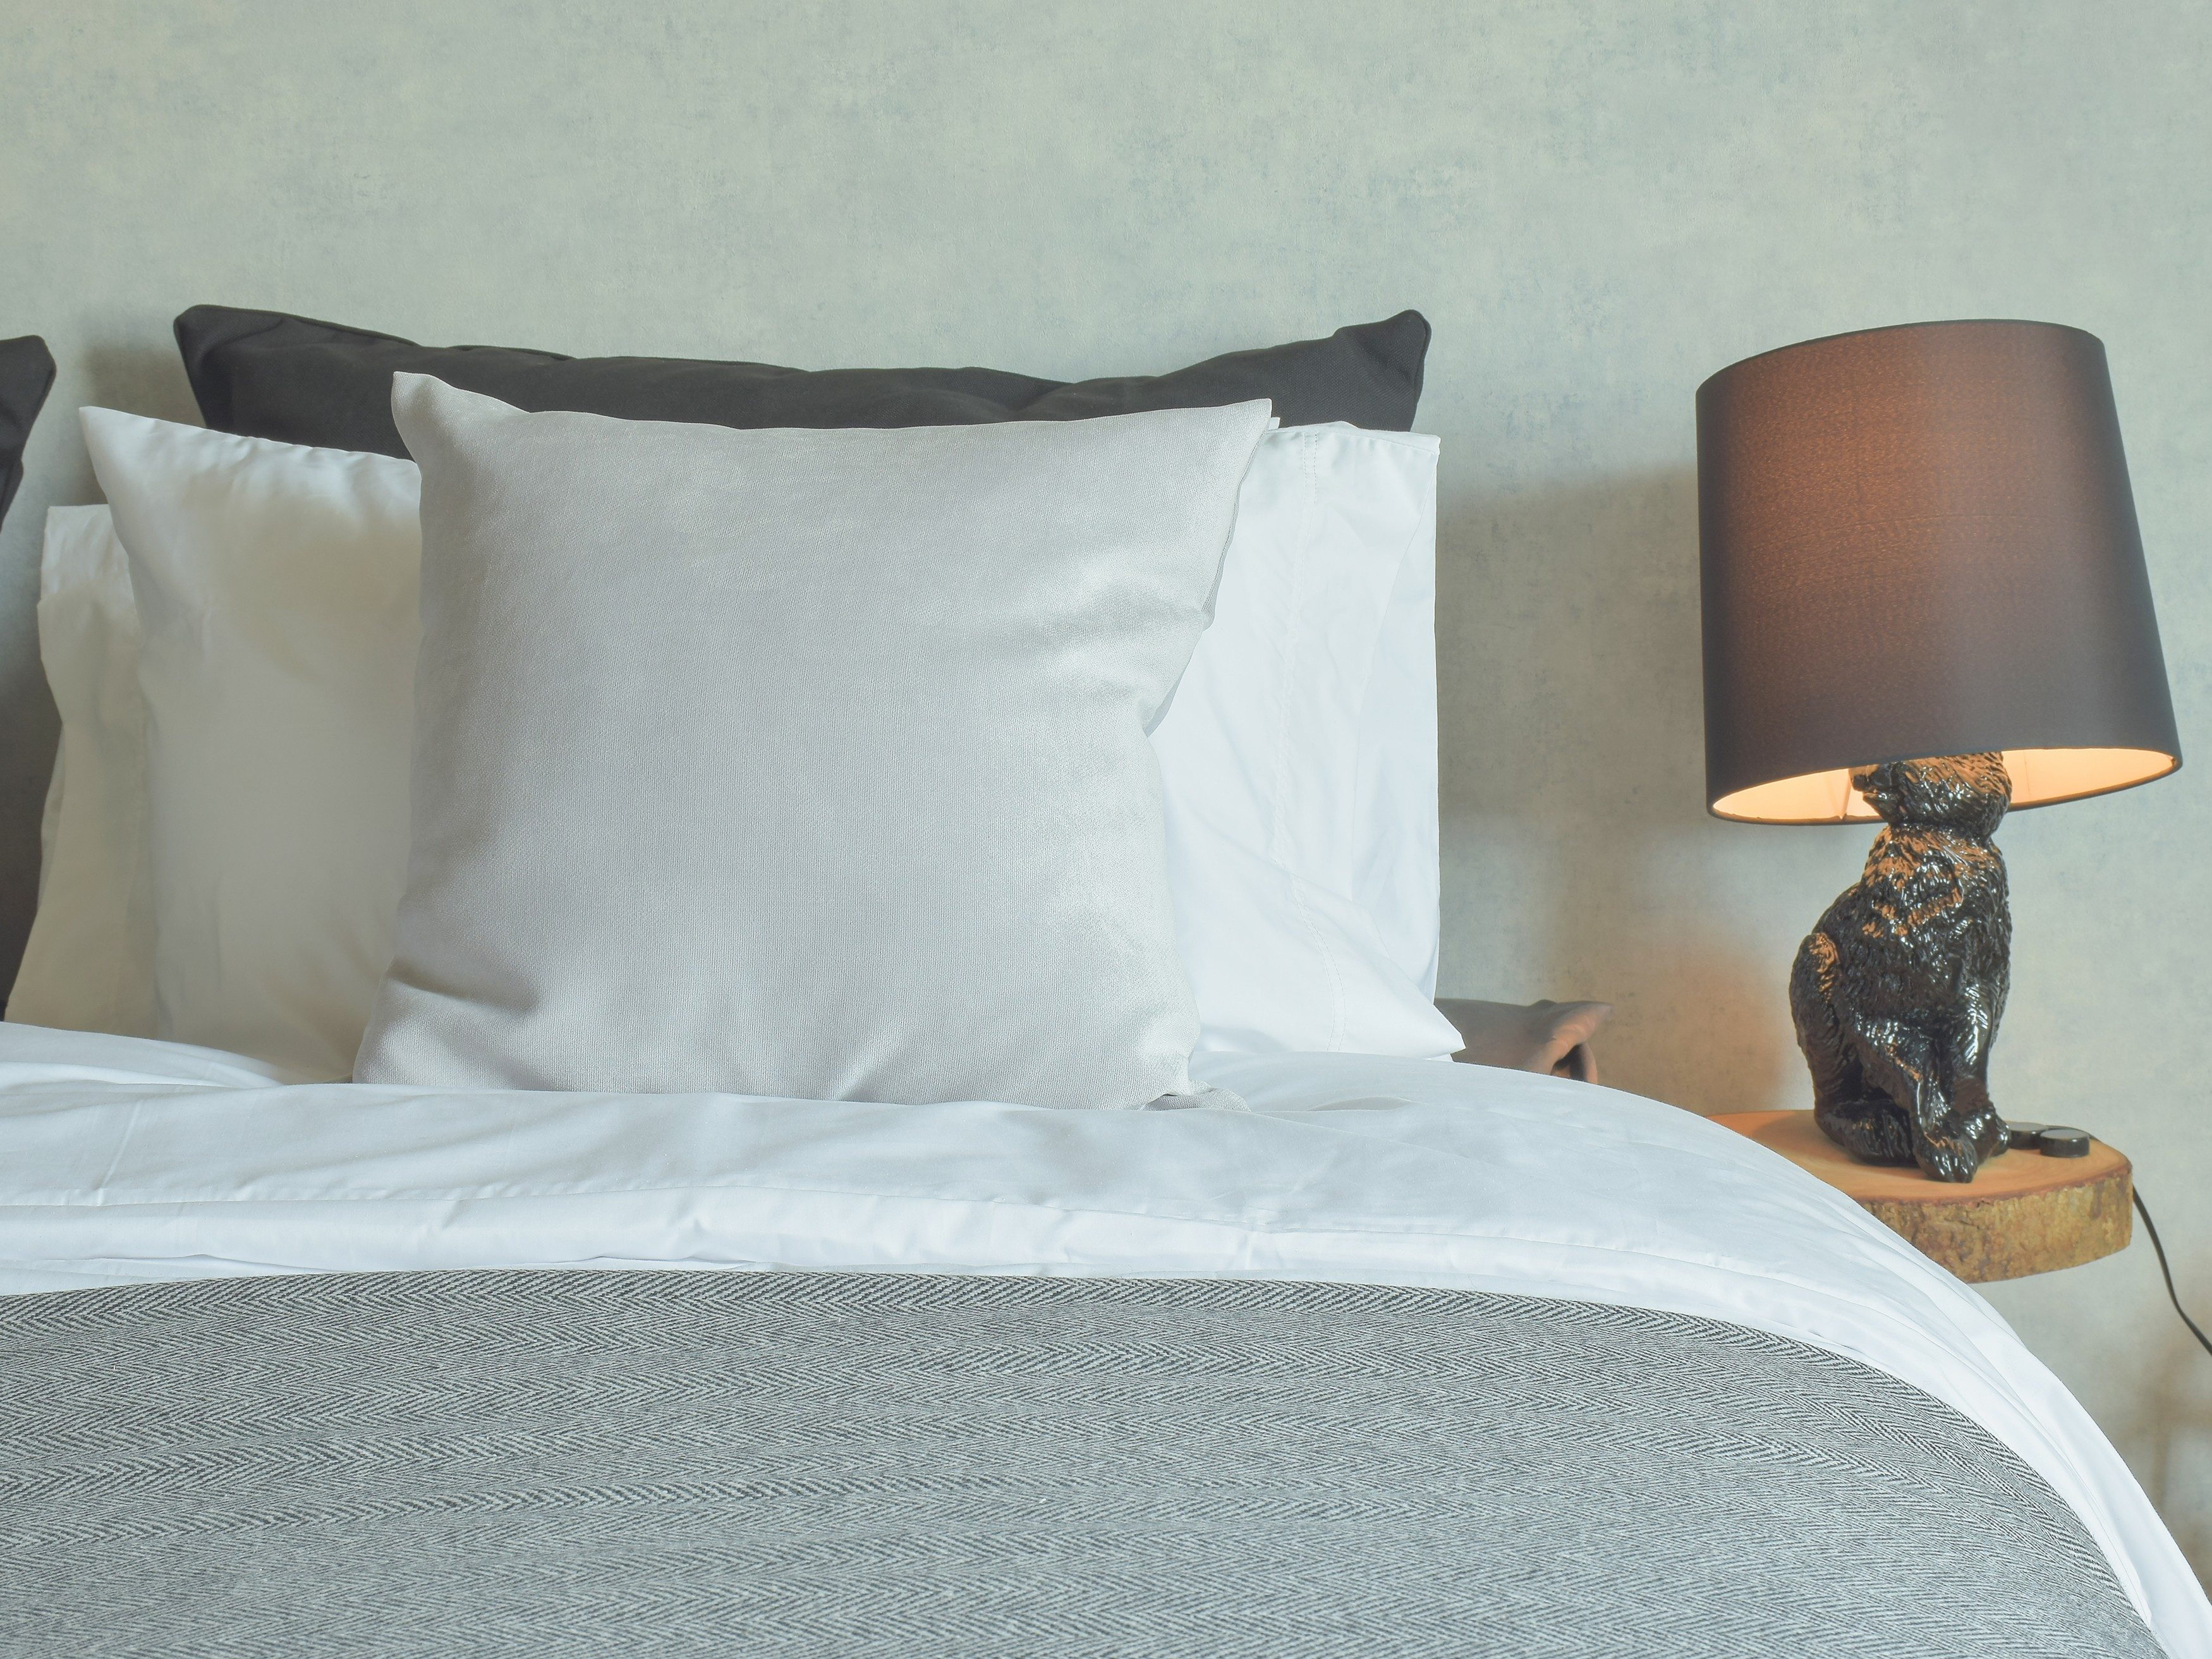 4. Handle hotel comforters with care.